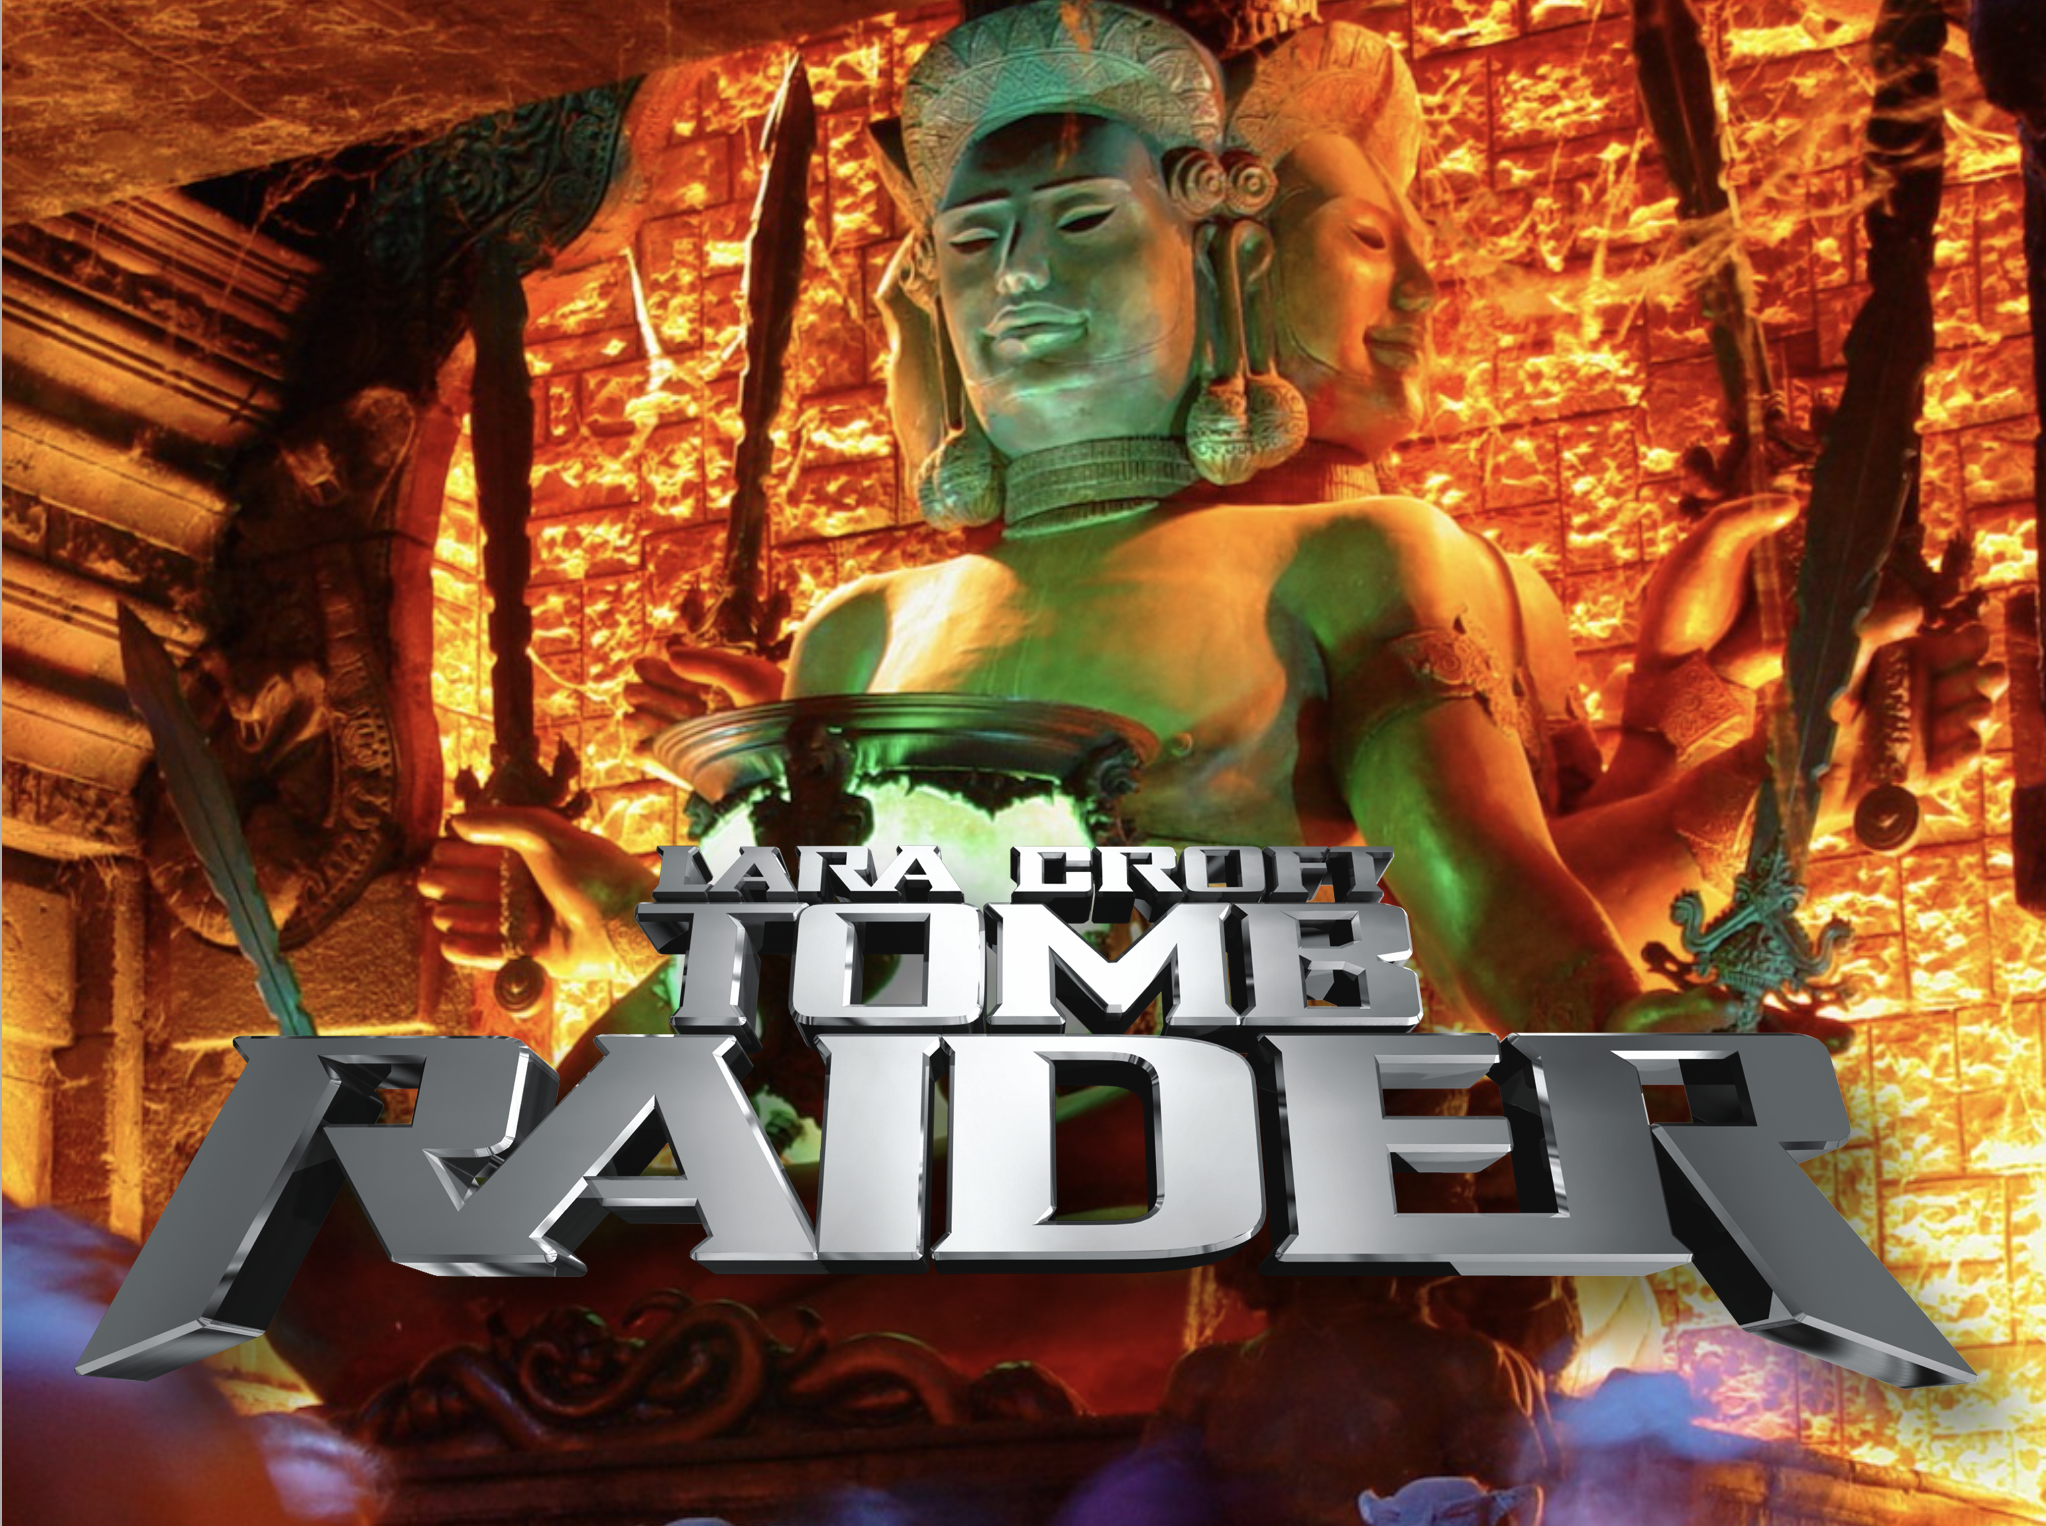 Tomb Raider: The Ride, at Paramount's King's Island